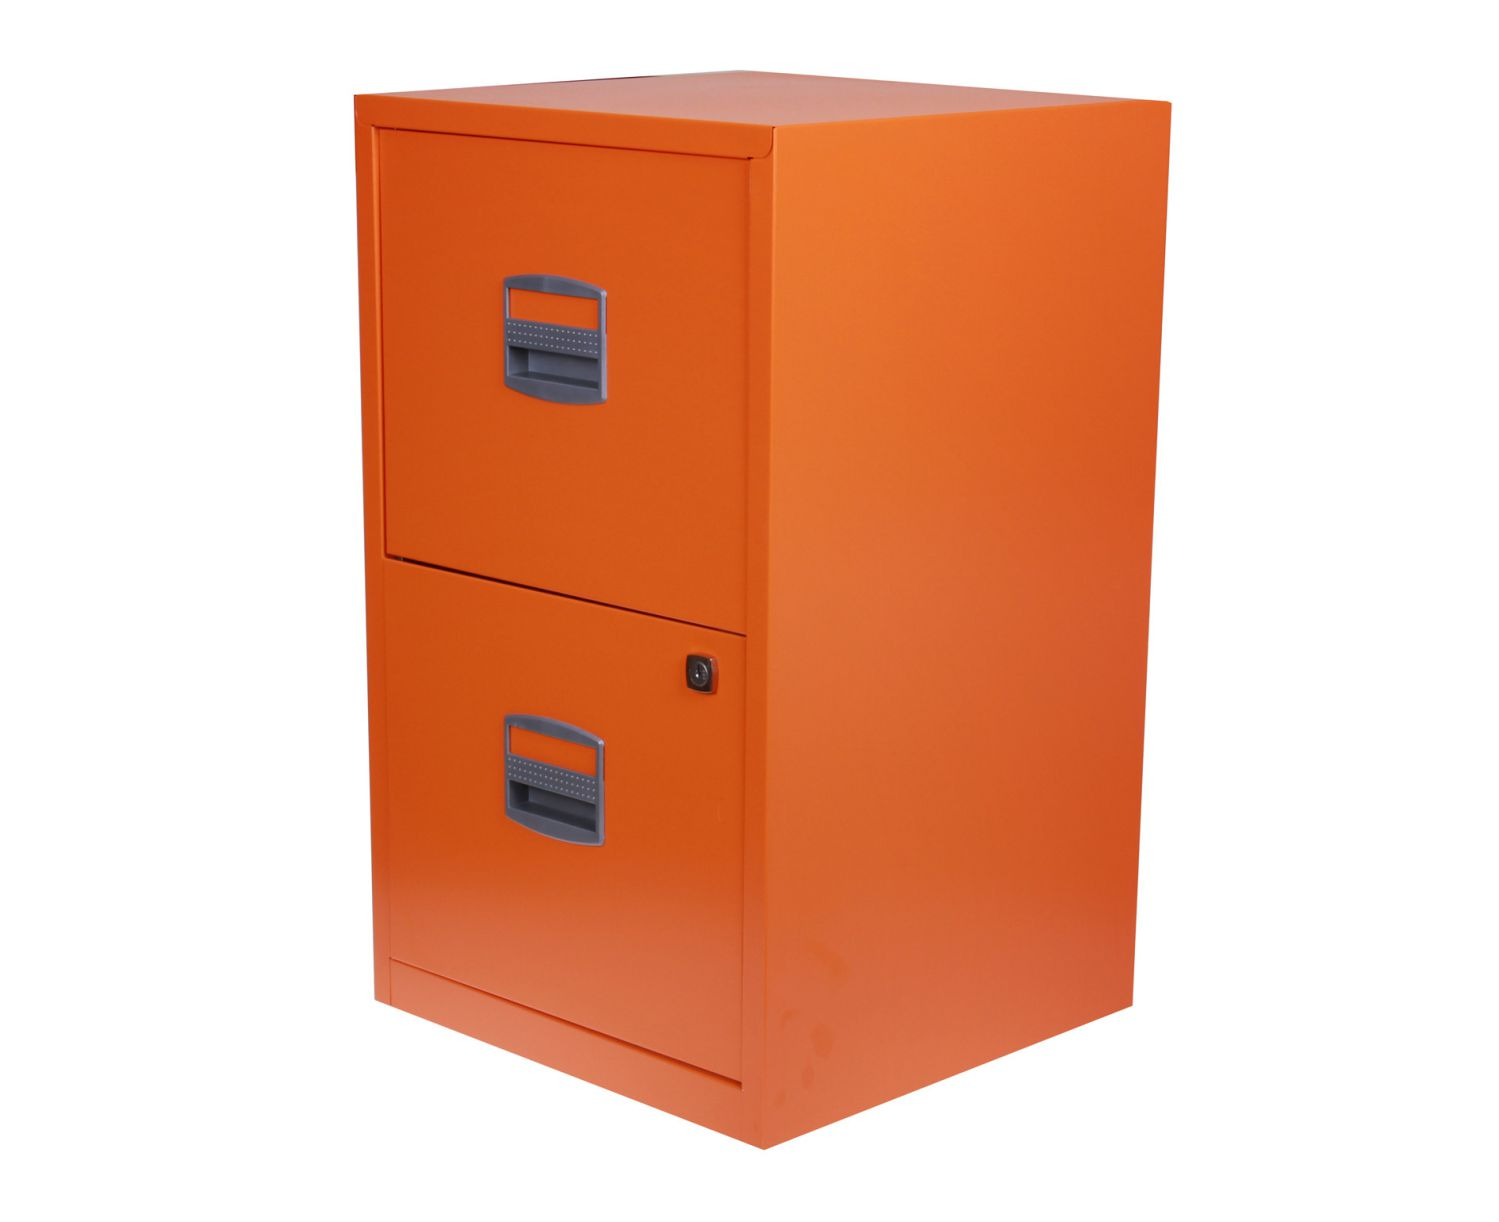 Bisley 2 Drawer Metal Filing Cabinet in Orange